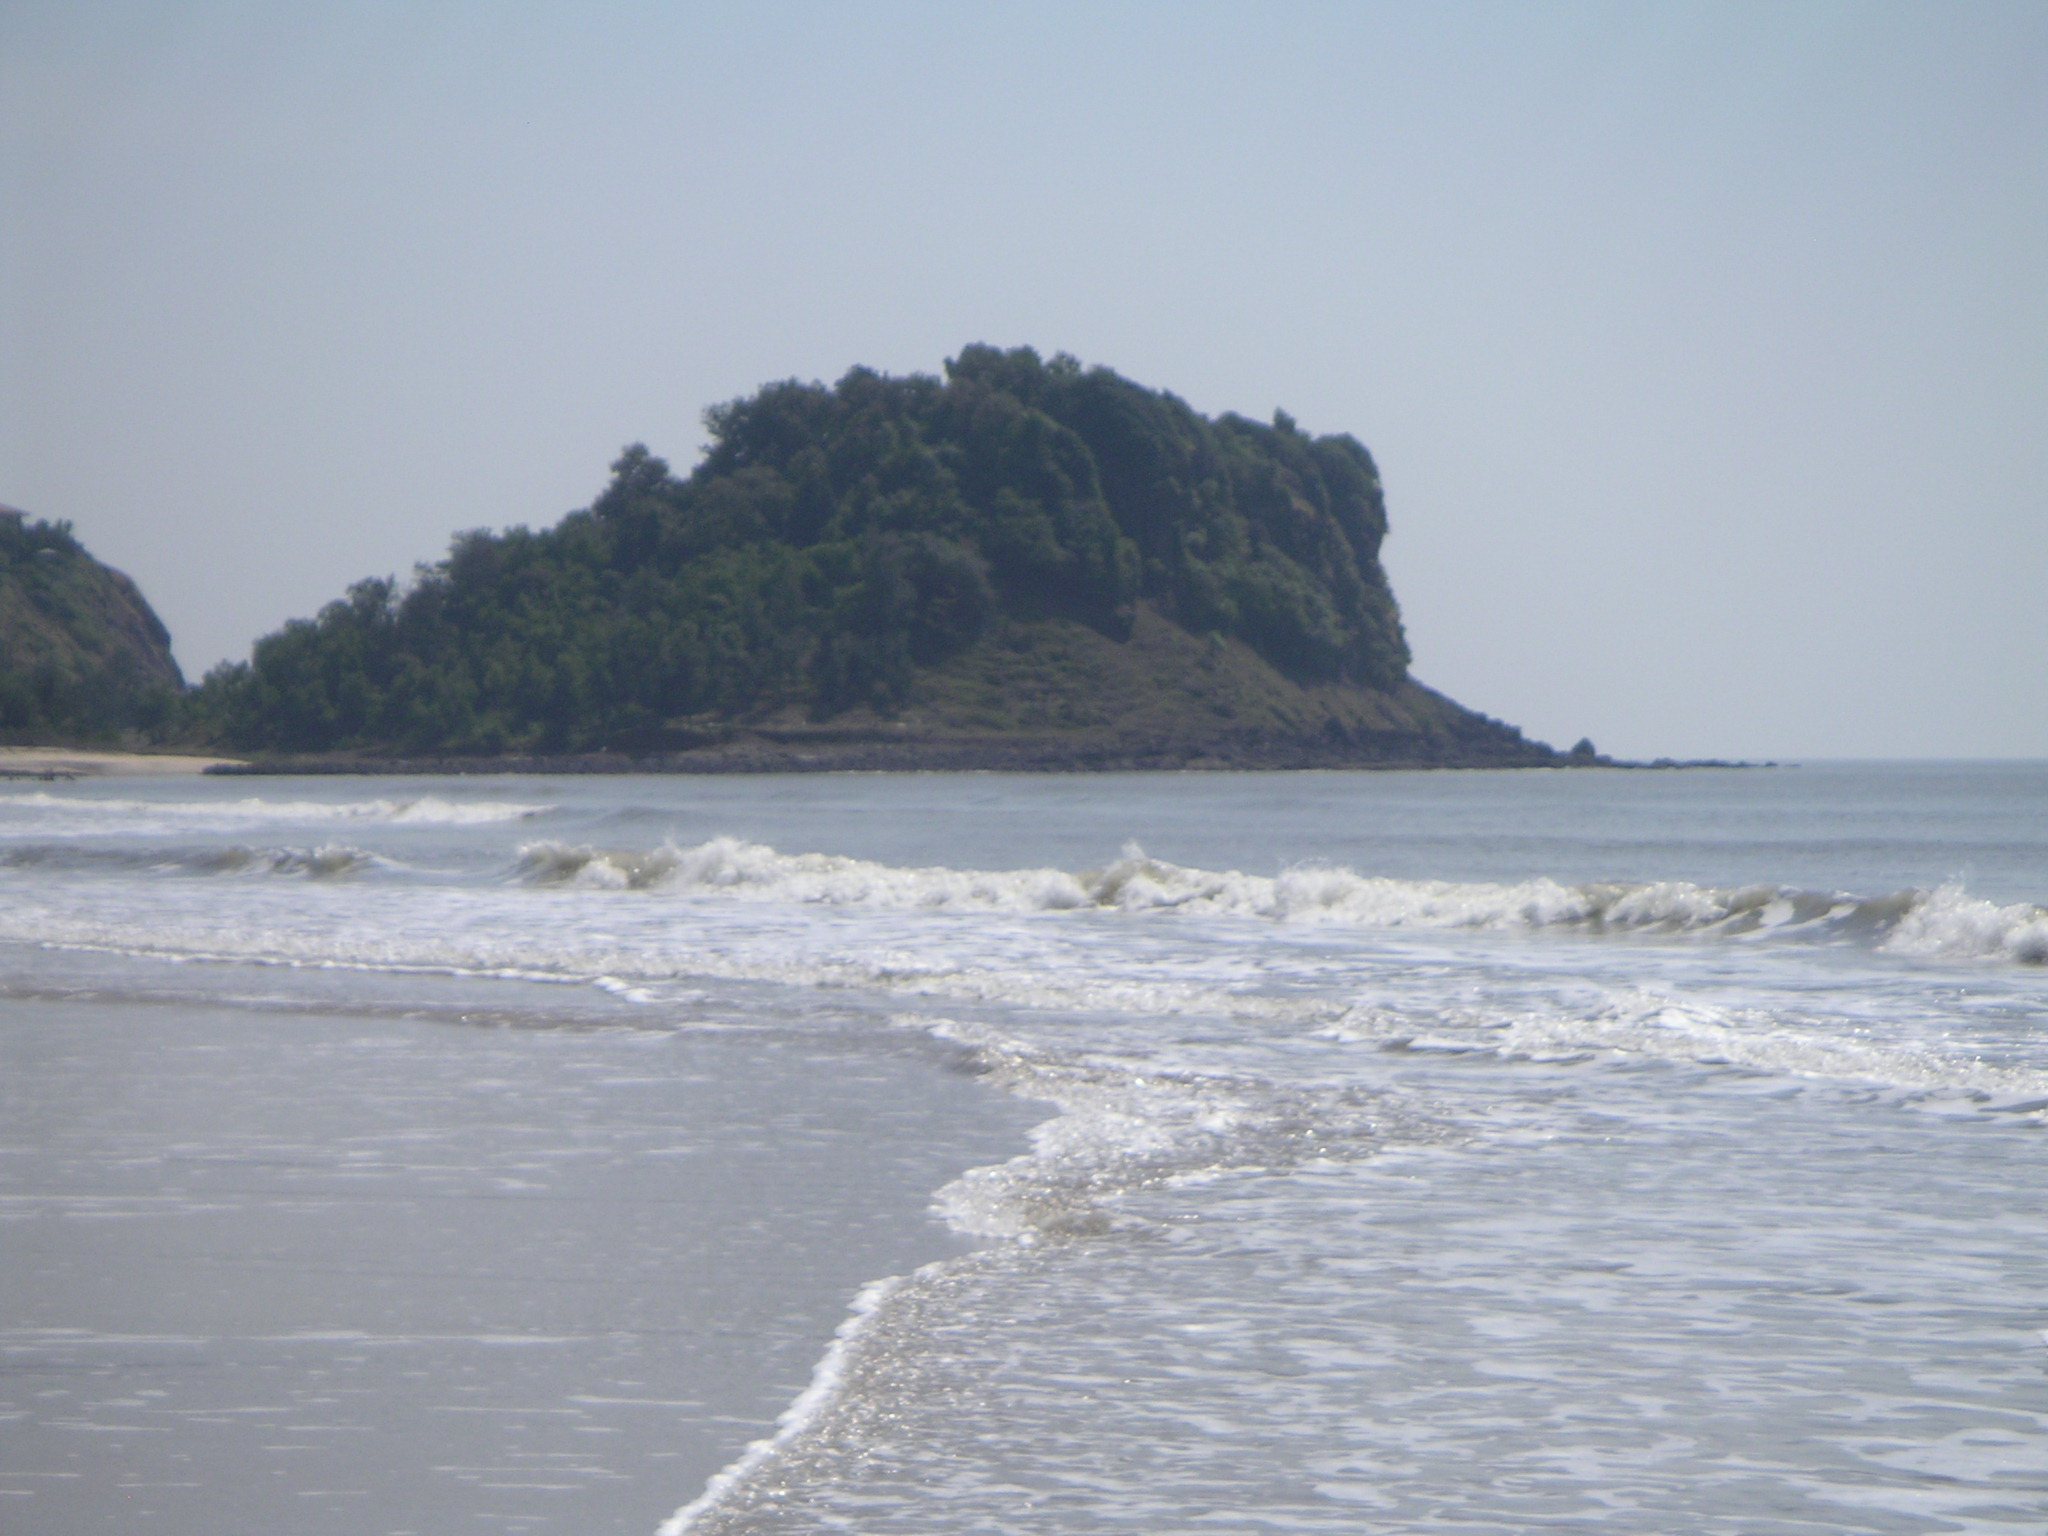 Konkan Beaches http://totalpict.com/beautiful%20beaches%20of%20konkan